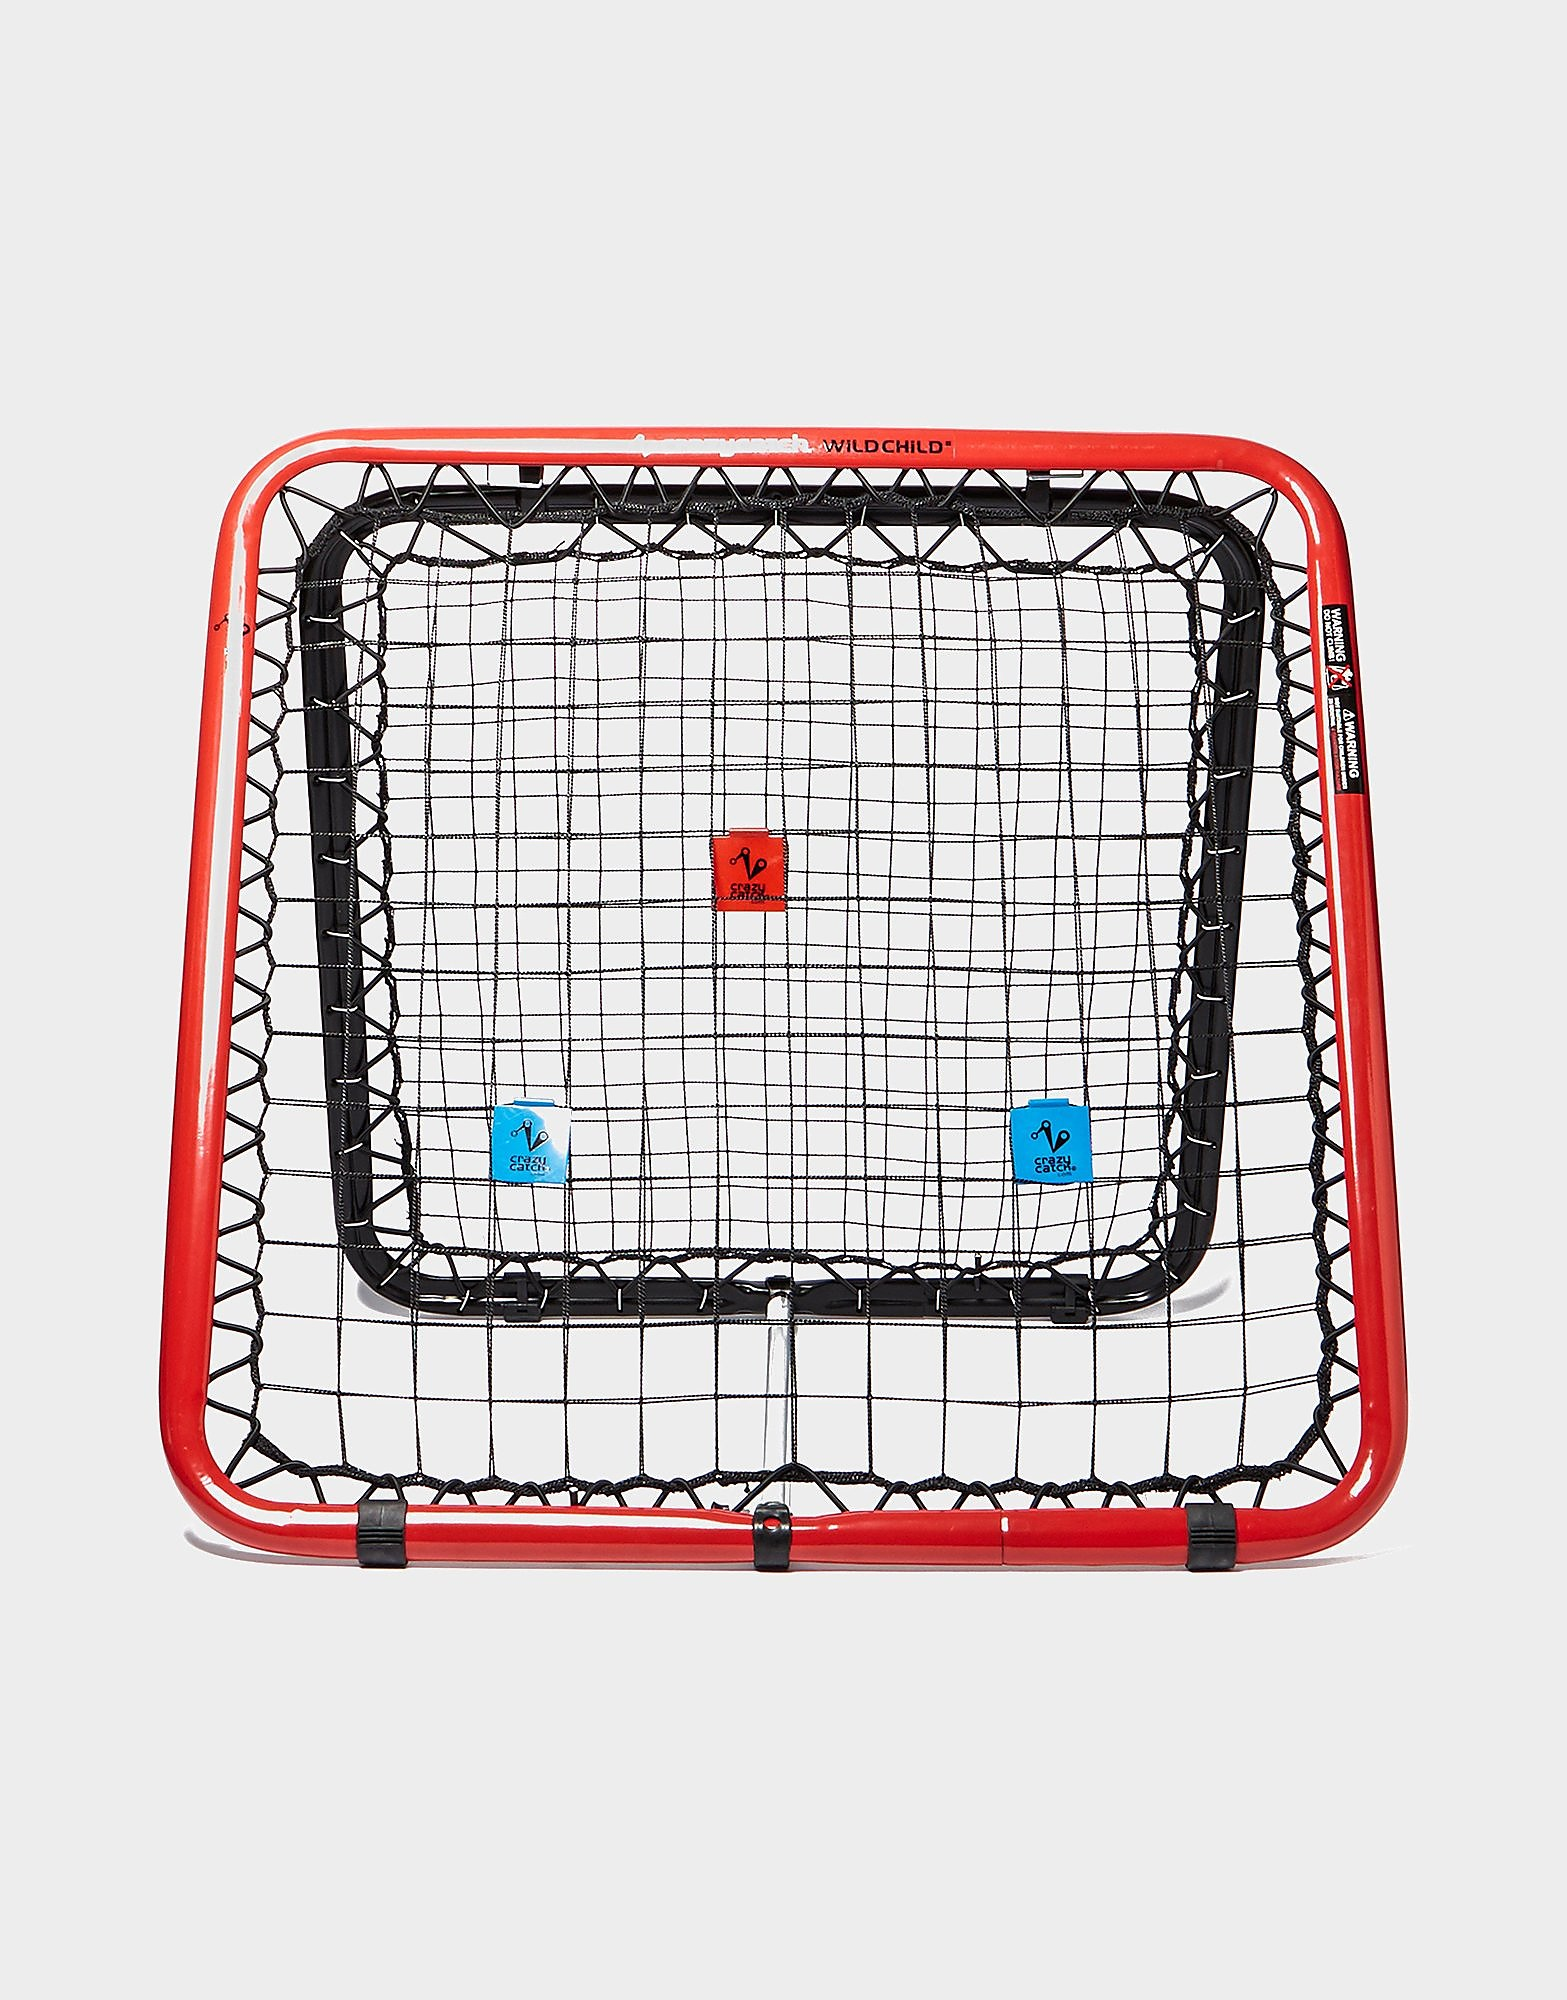 Crazy Catch Wild Child Classic Rebound Net